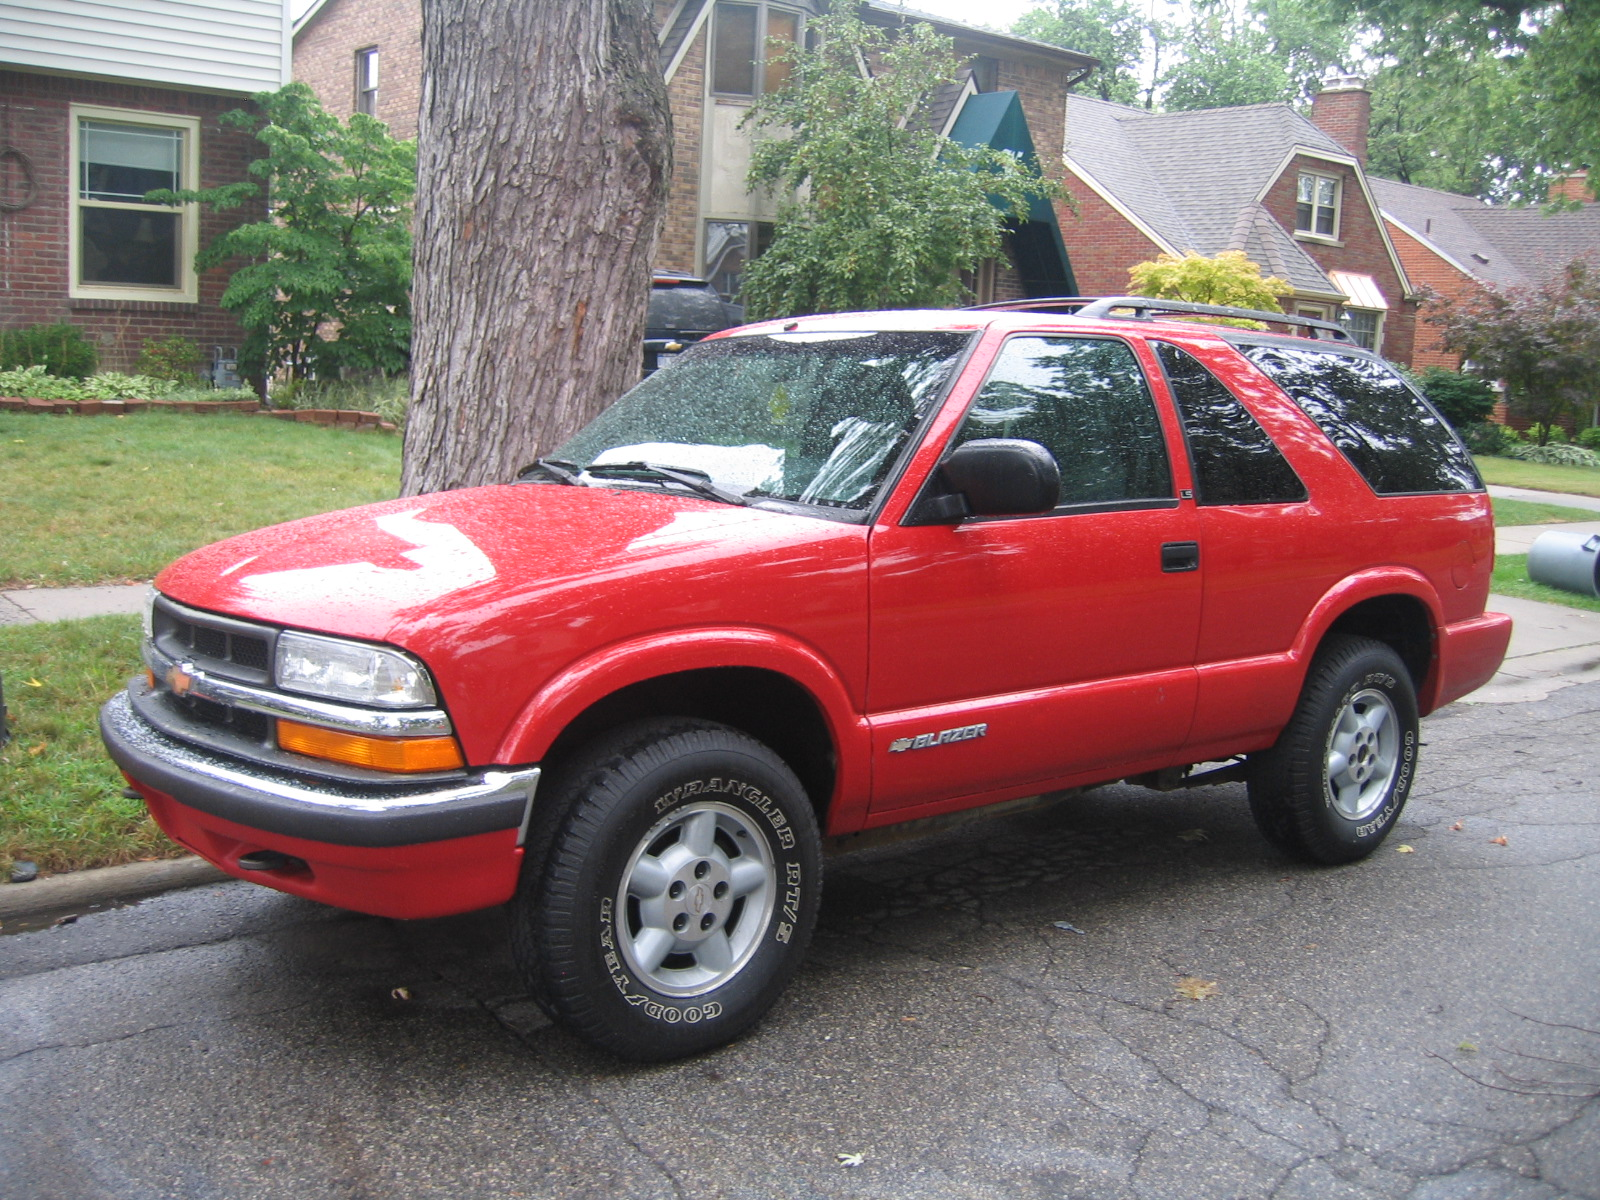 Picture of 2000 Chevrolet Blazer 2 Dr LS 4WD SUV